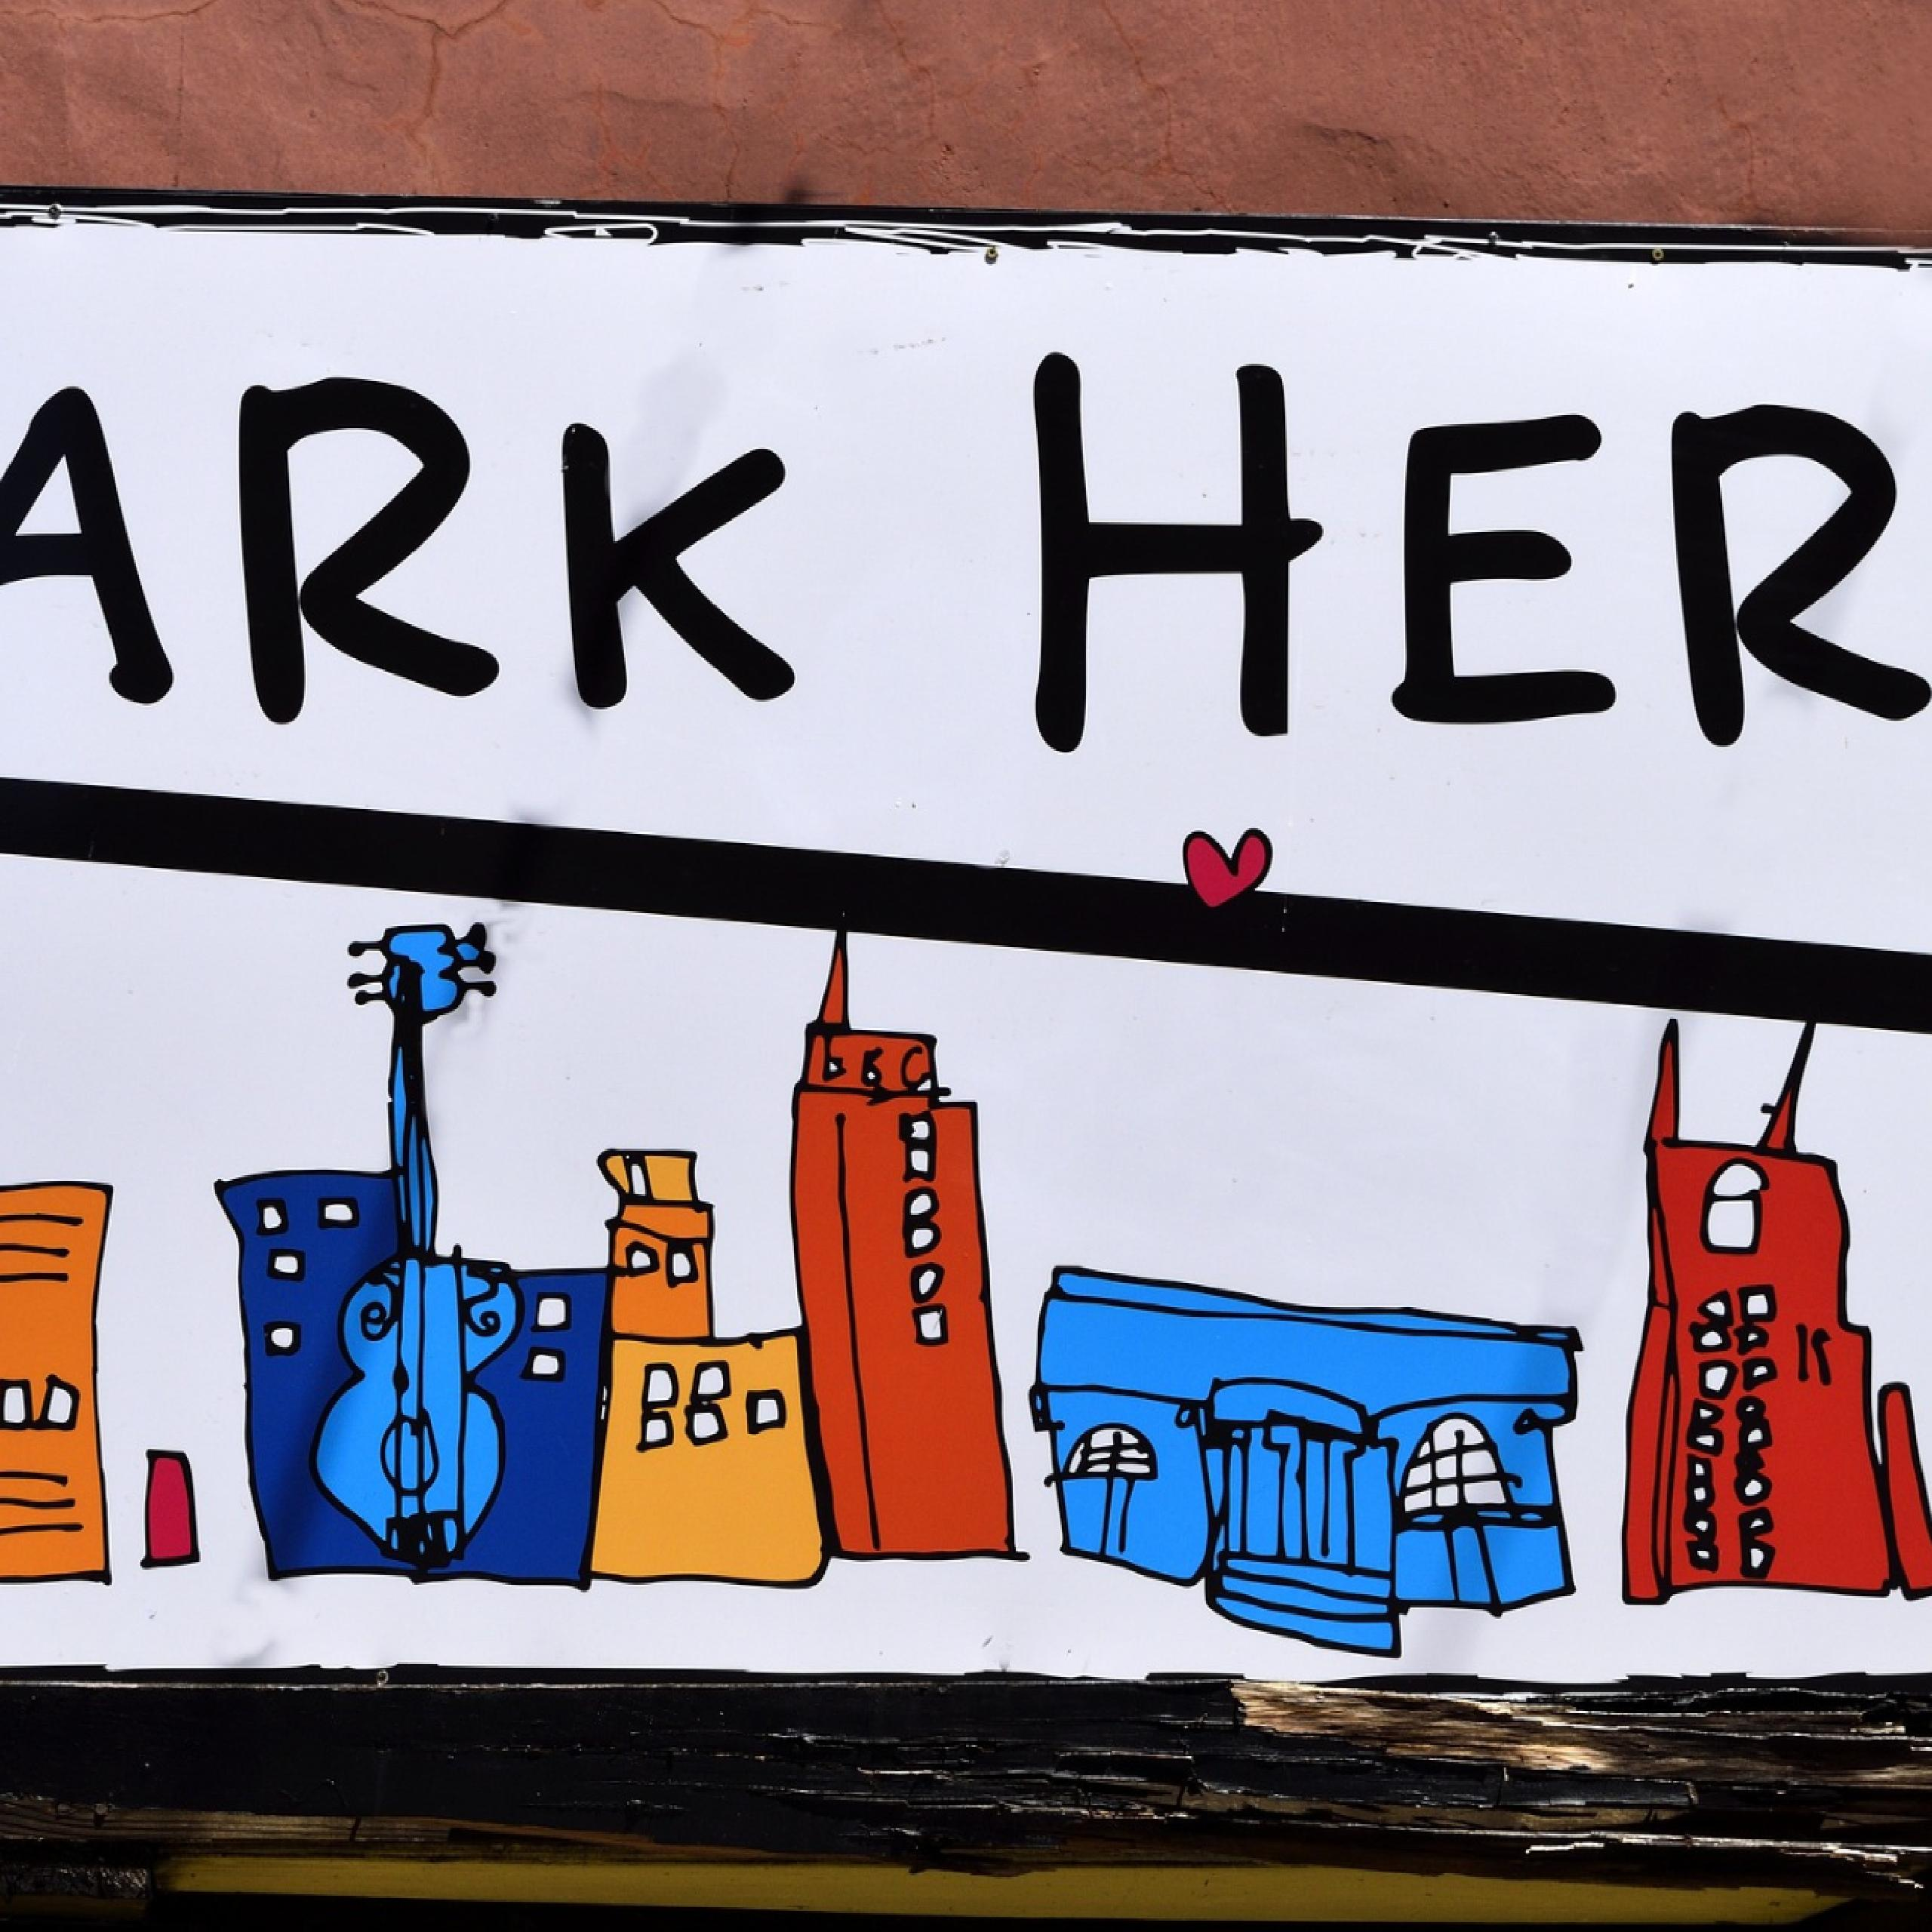 close up of park here sign with city drawings